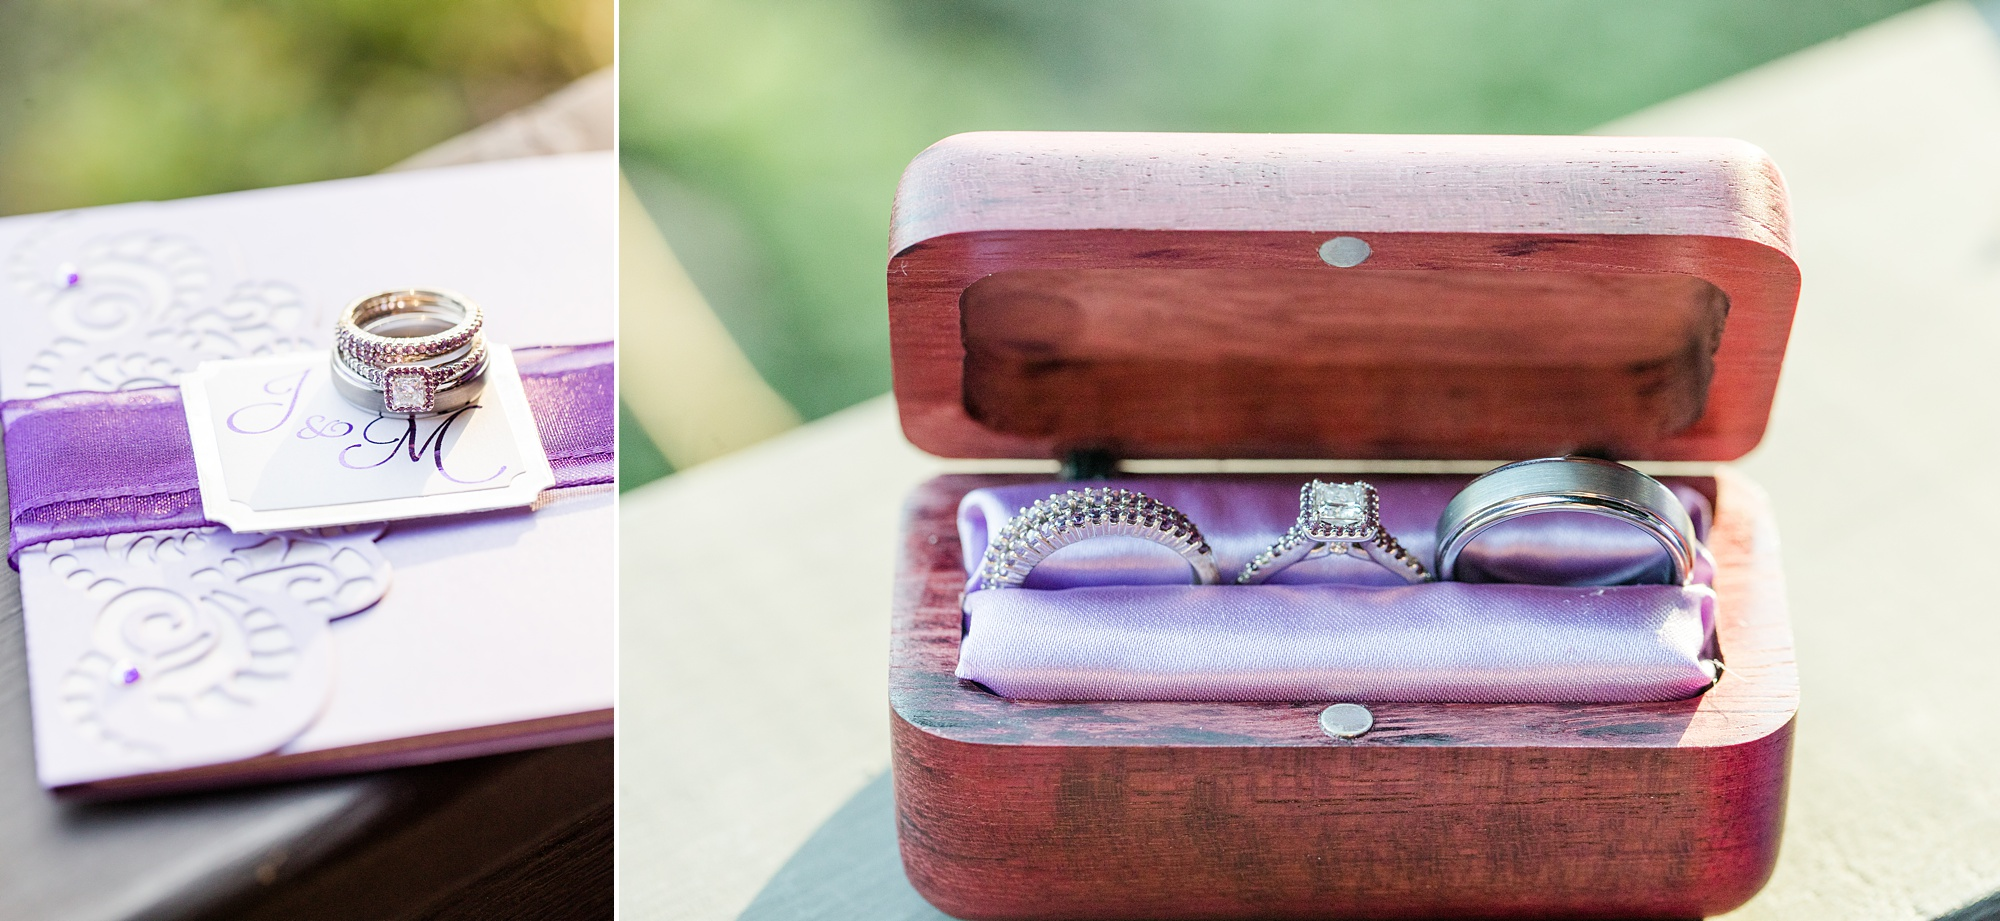 wedding rings rest in wooden box with purple lining